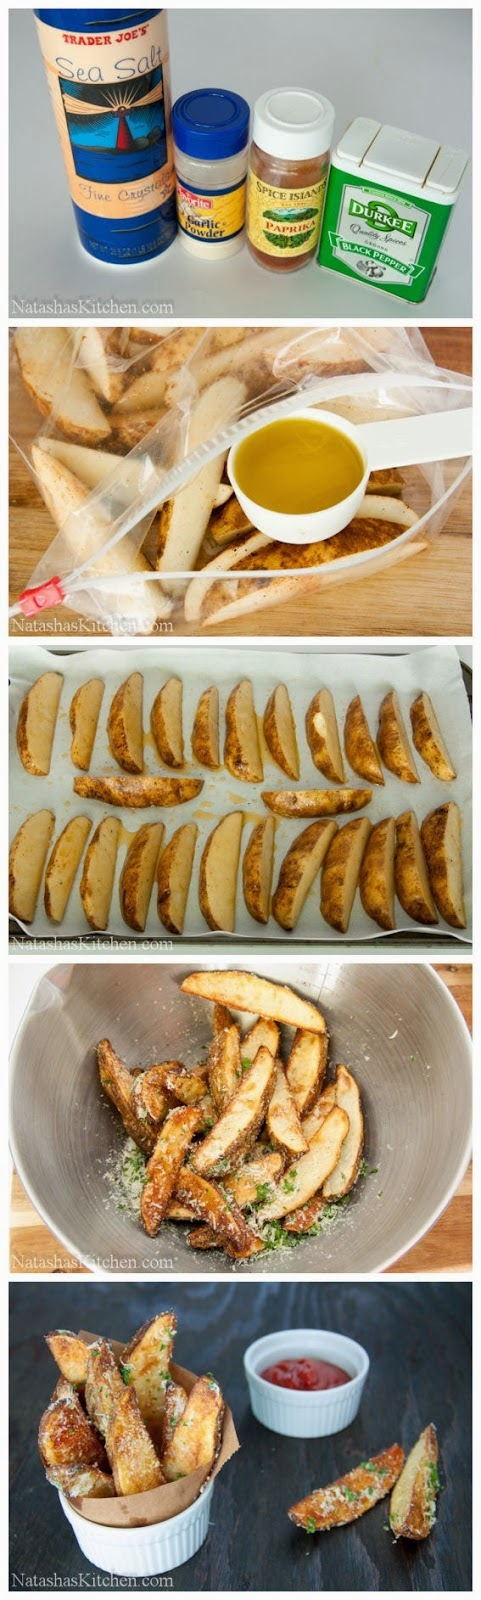 how to cook potato wedges in the oven